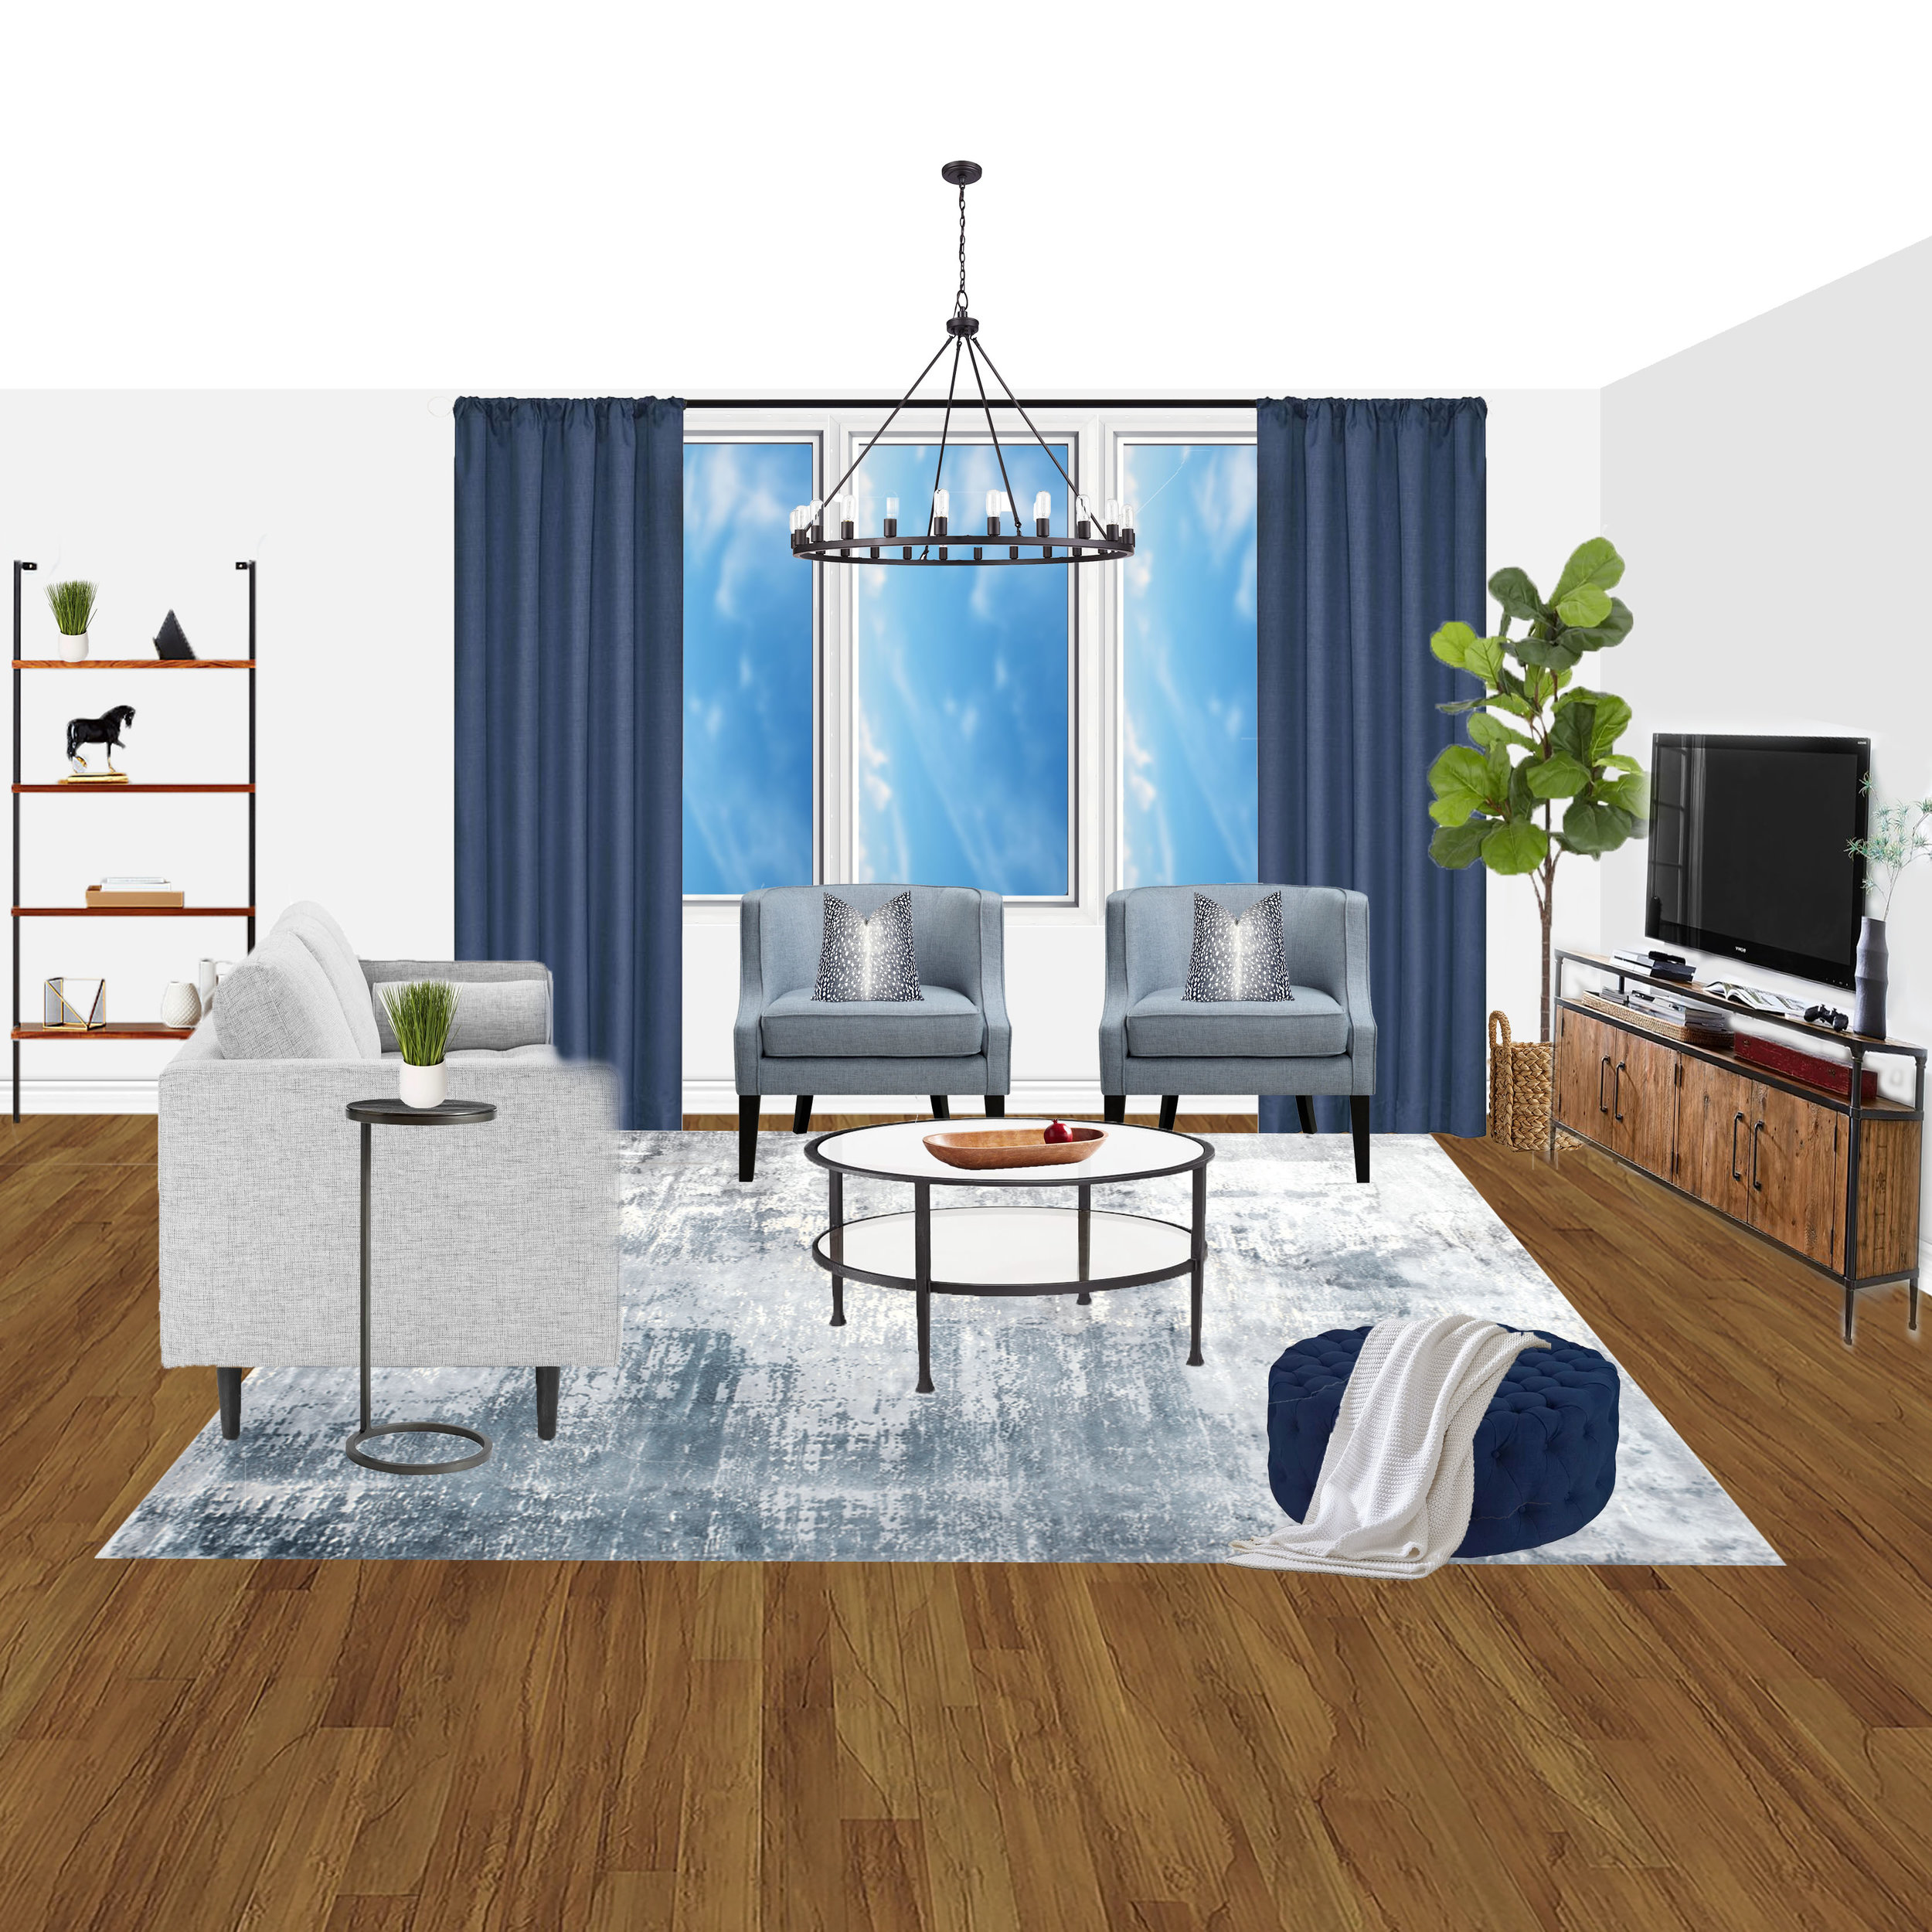 Living Room E-Design